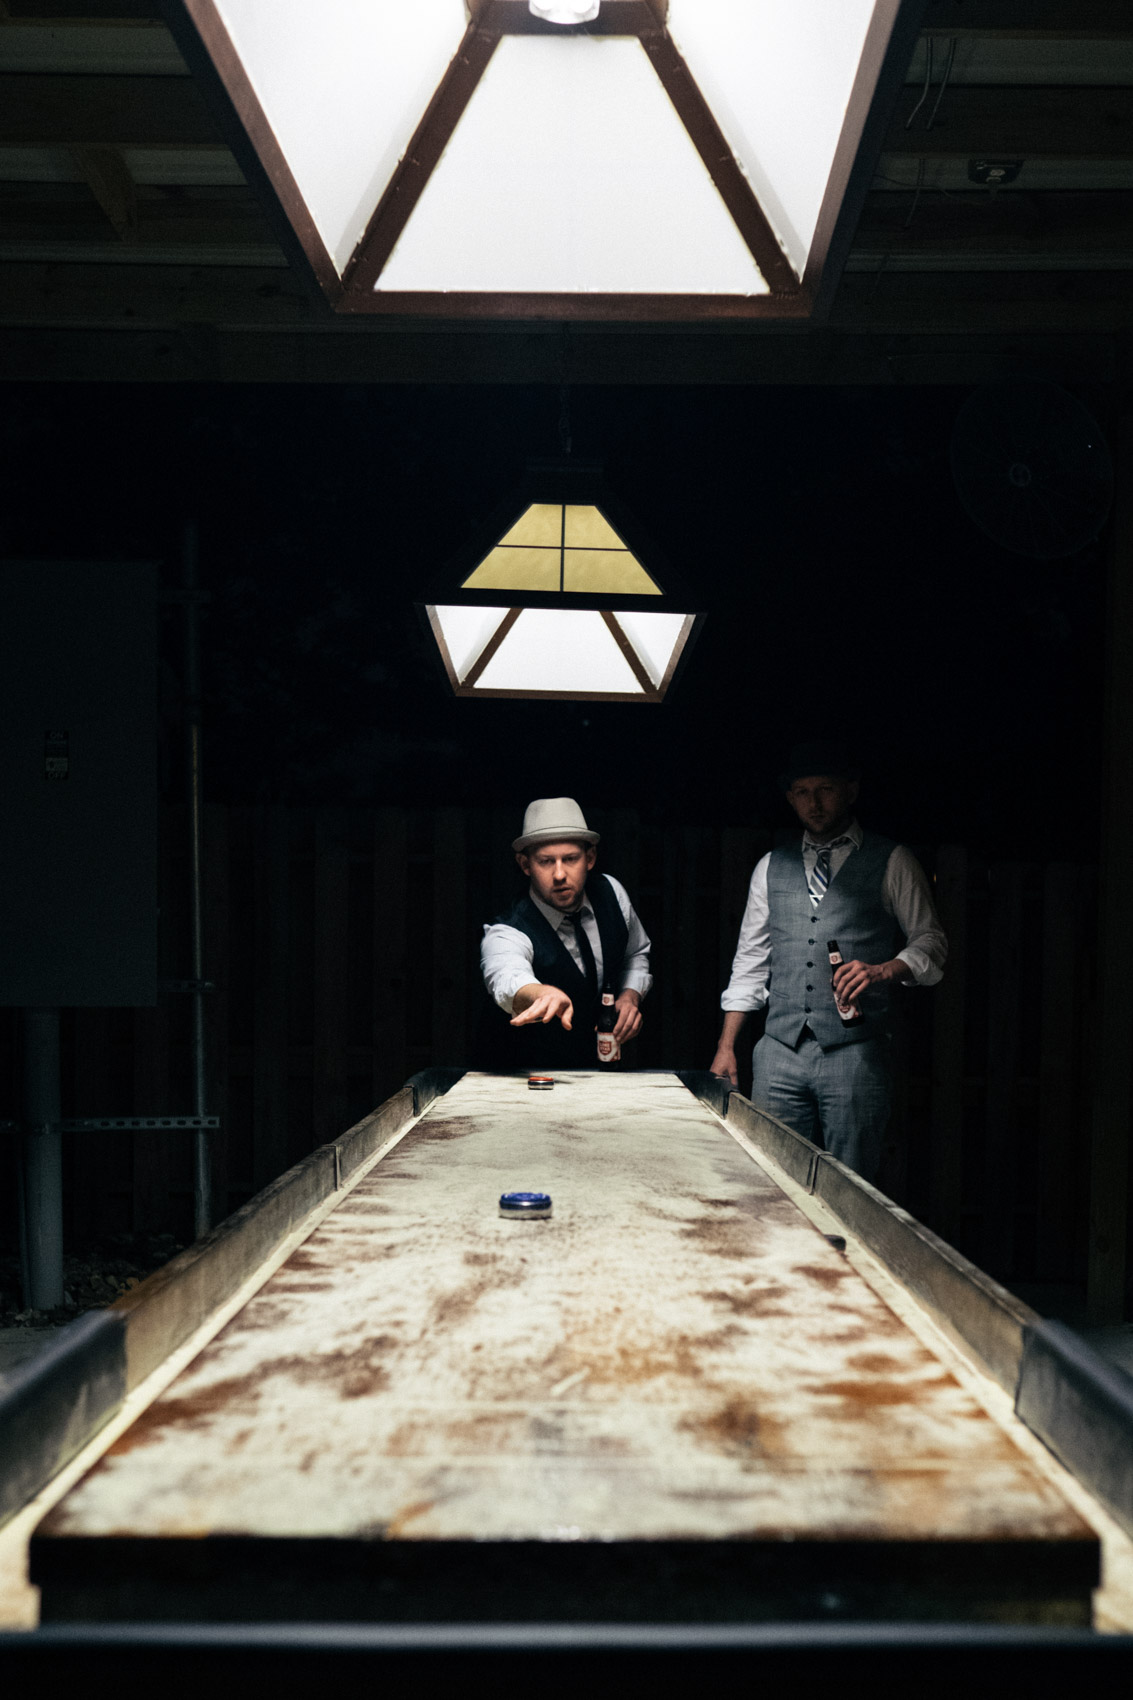 Shuffleboard at C-Boys